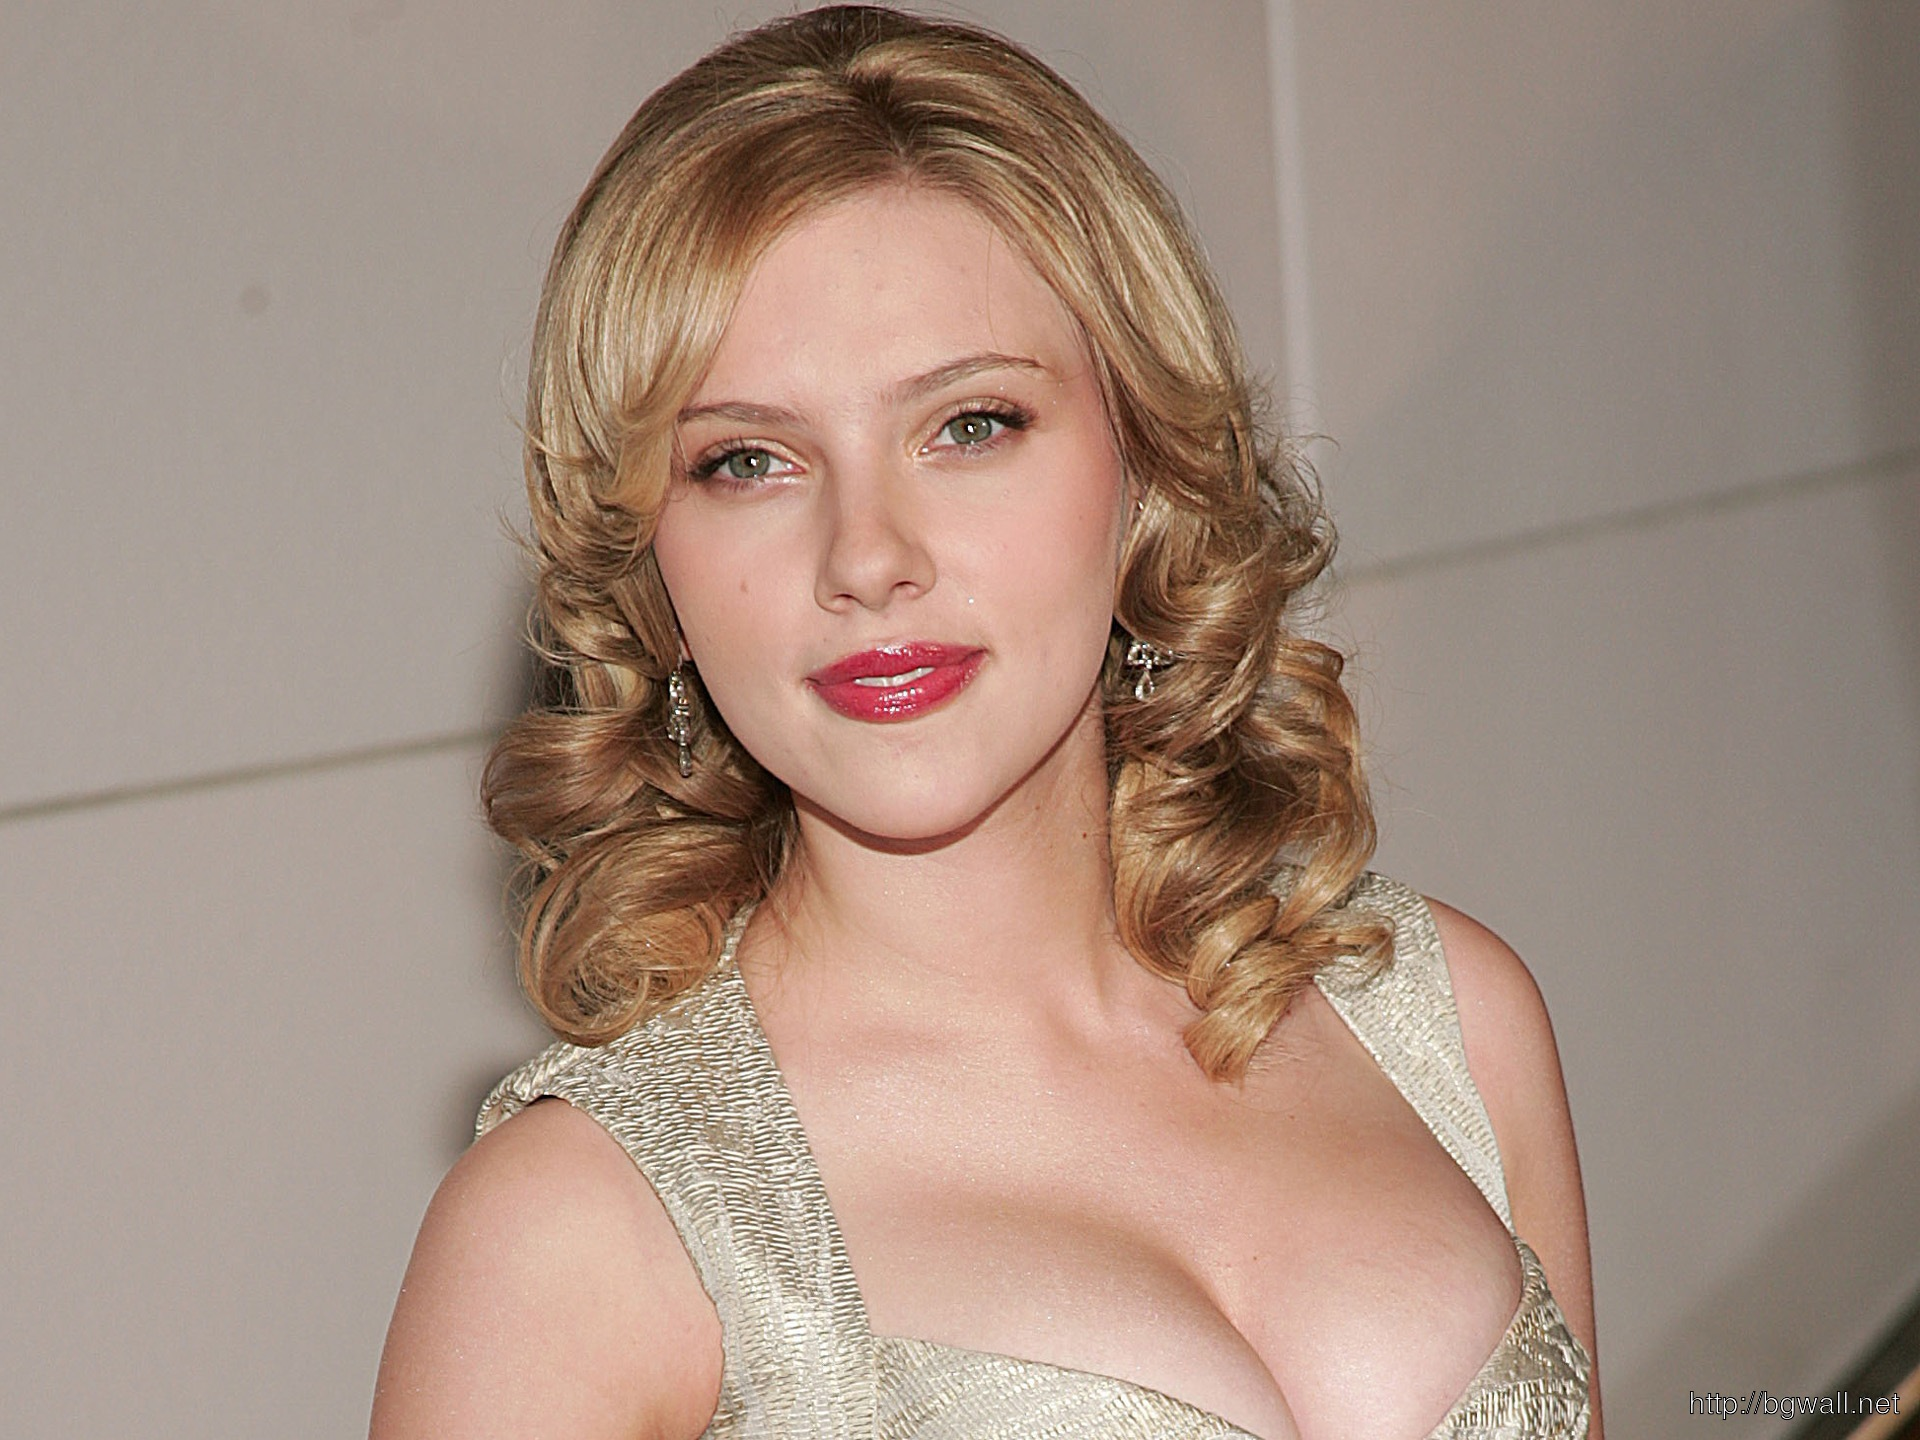 Scarlett Johansson Wallpapers Full Size - Scarlett Johansson Full Hd -  1920x1440 - Download HD Wallpaper - WallpaperTip